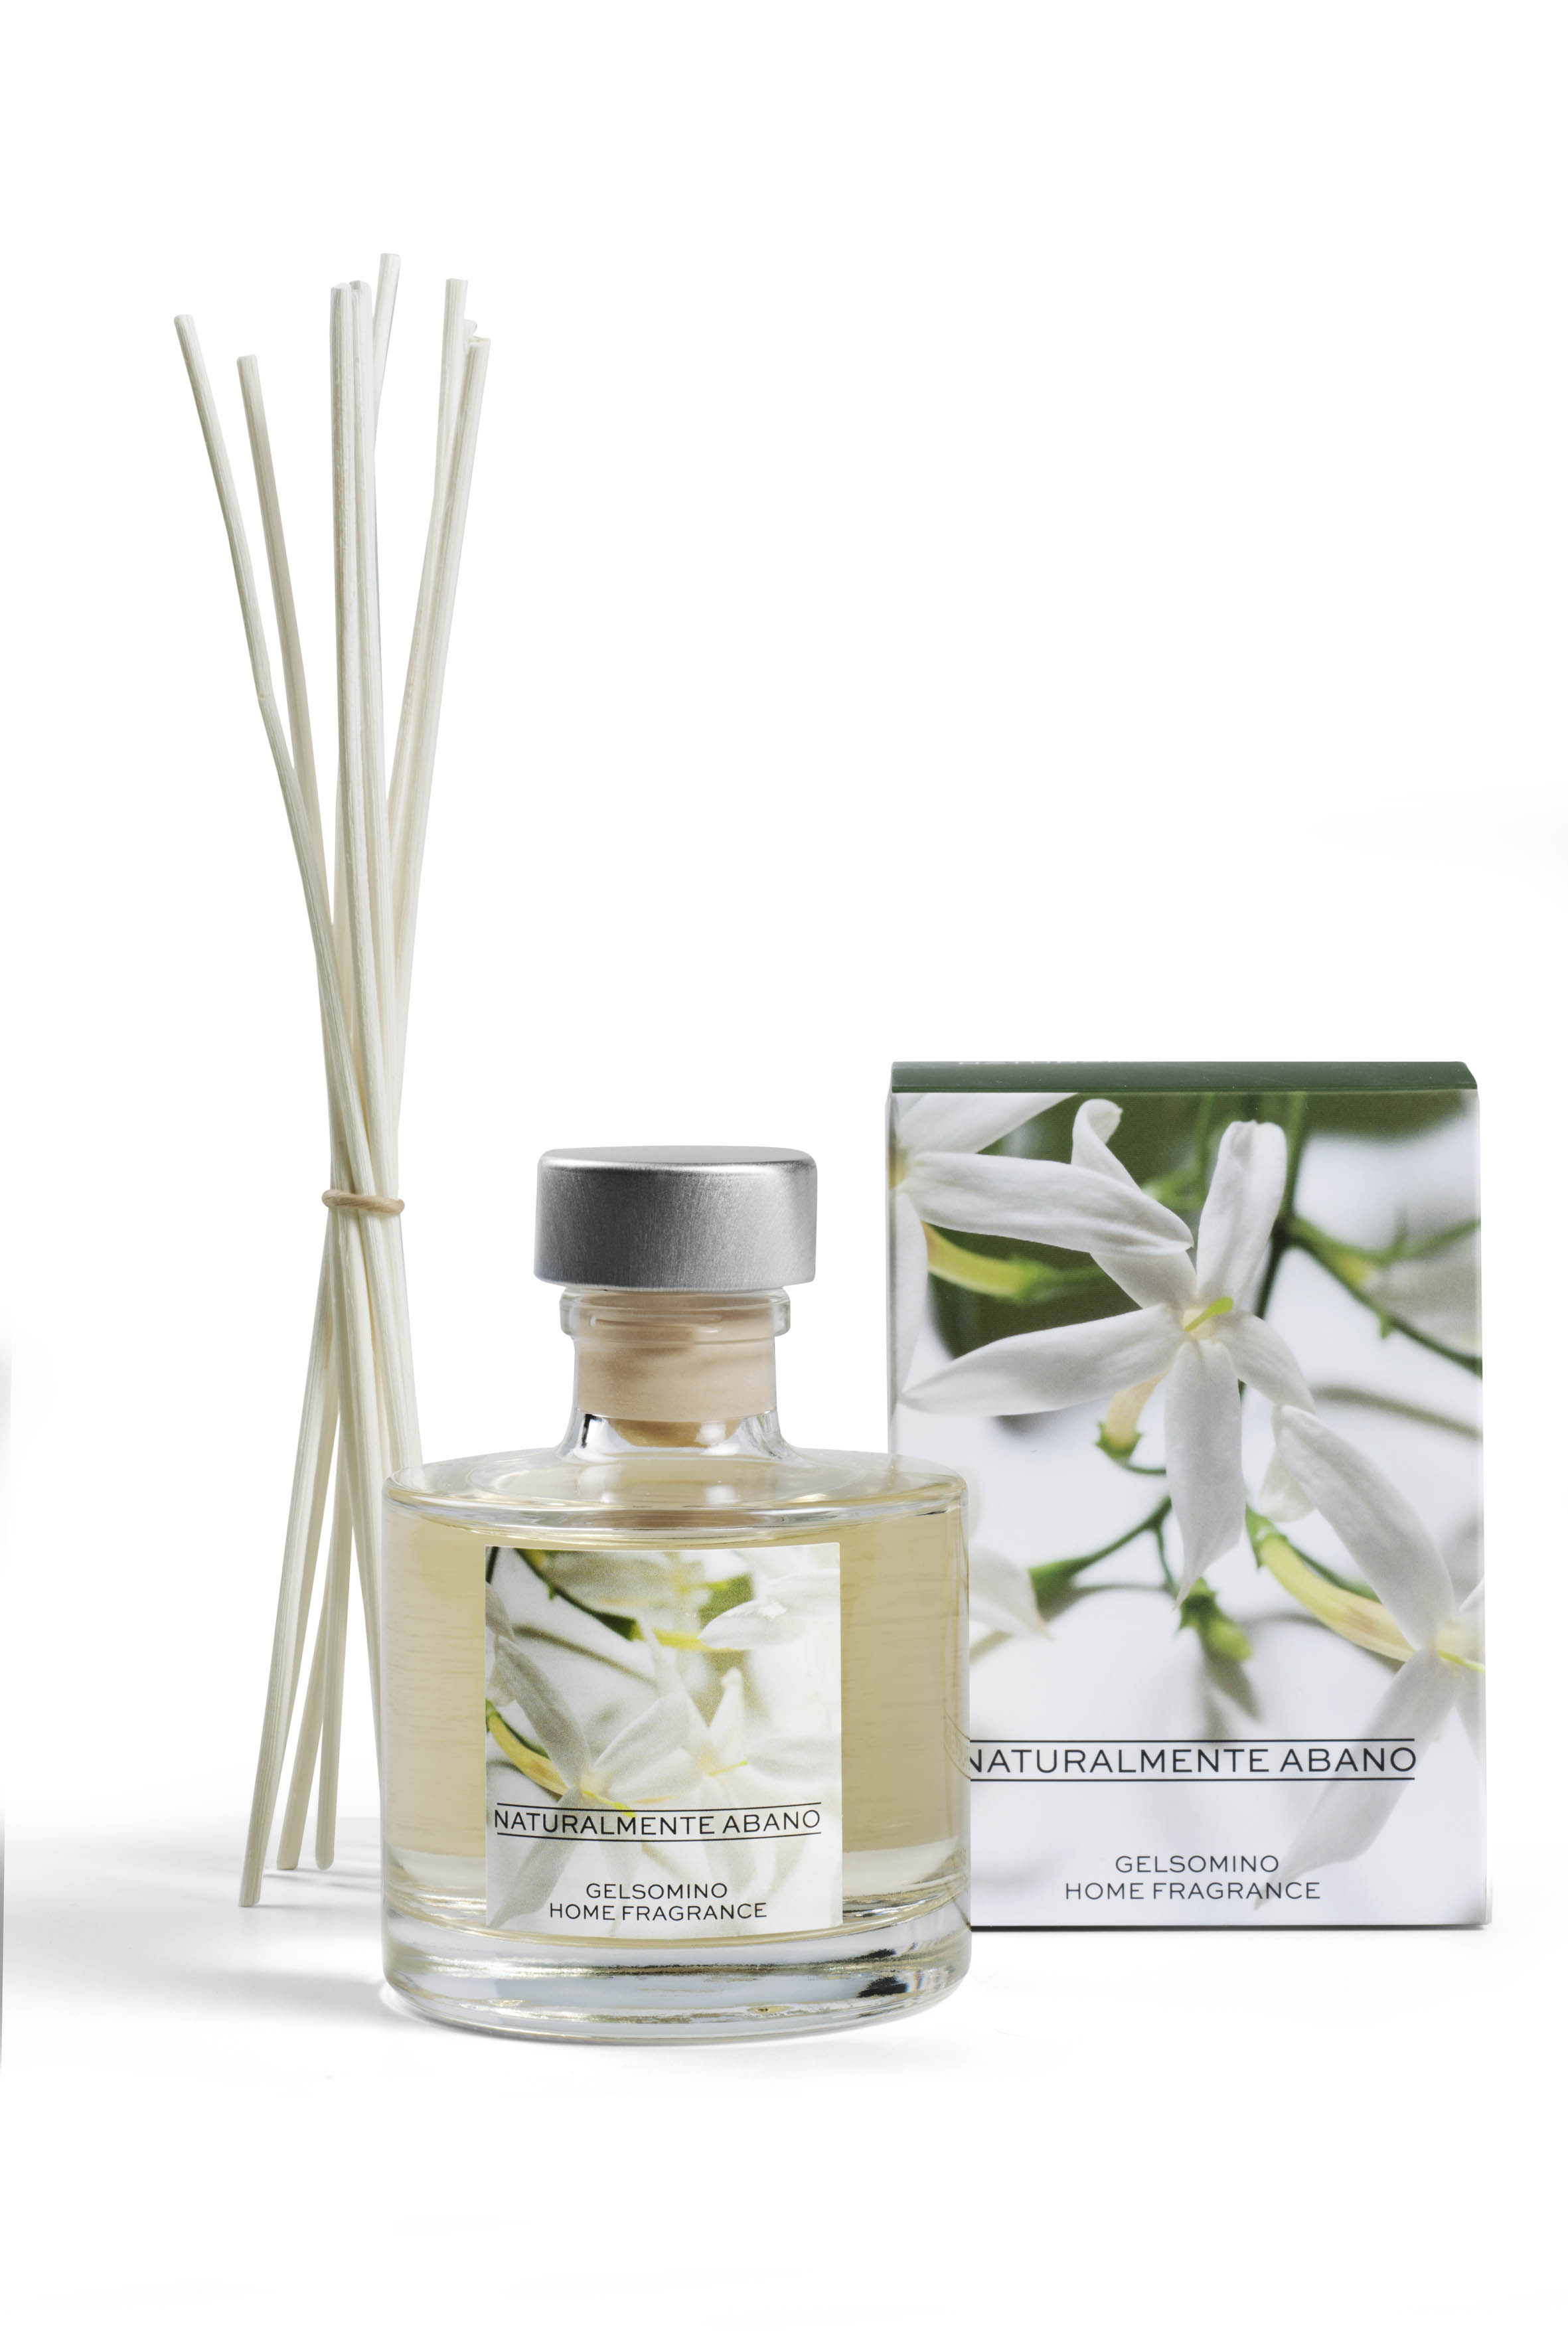 GELSOMINO HOME FRAGRANCE